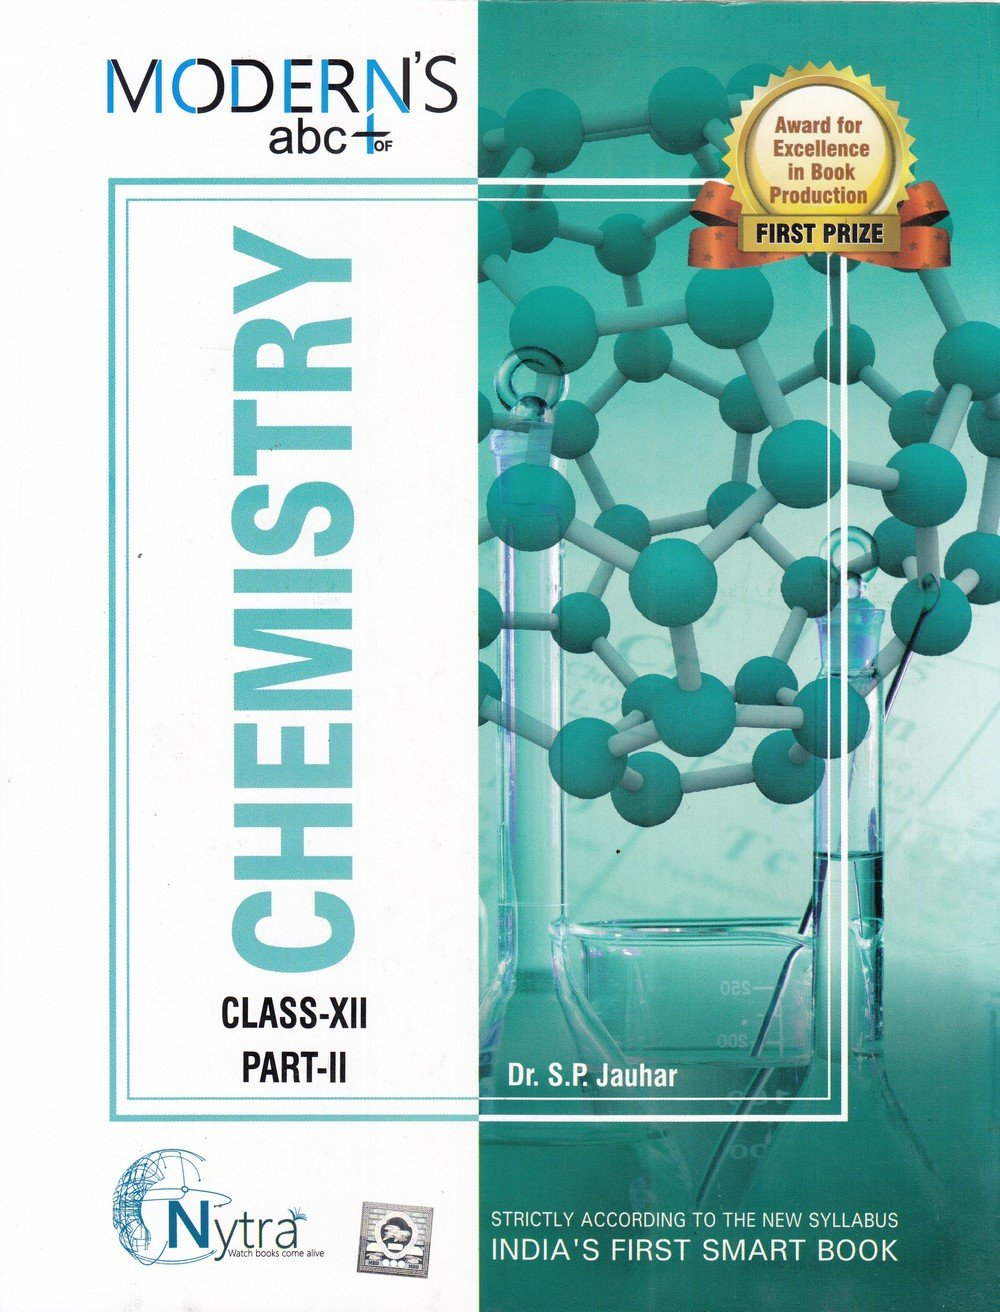 Mod abc plus of chemistry class 12 part i part ii set of 2 books mod abc plus of chemistry class 12 part i part ii set of 2 books amazon sp jauhar books fandeluxe Gallery